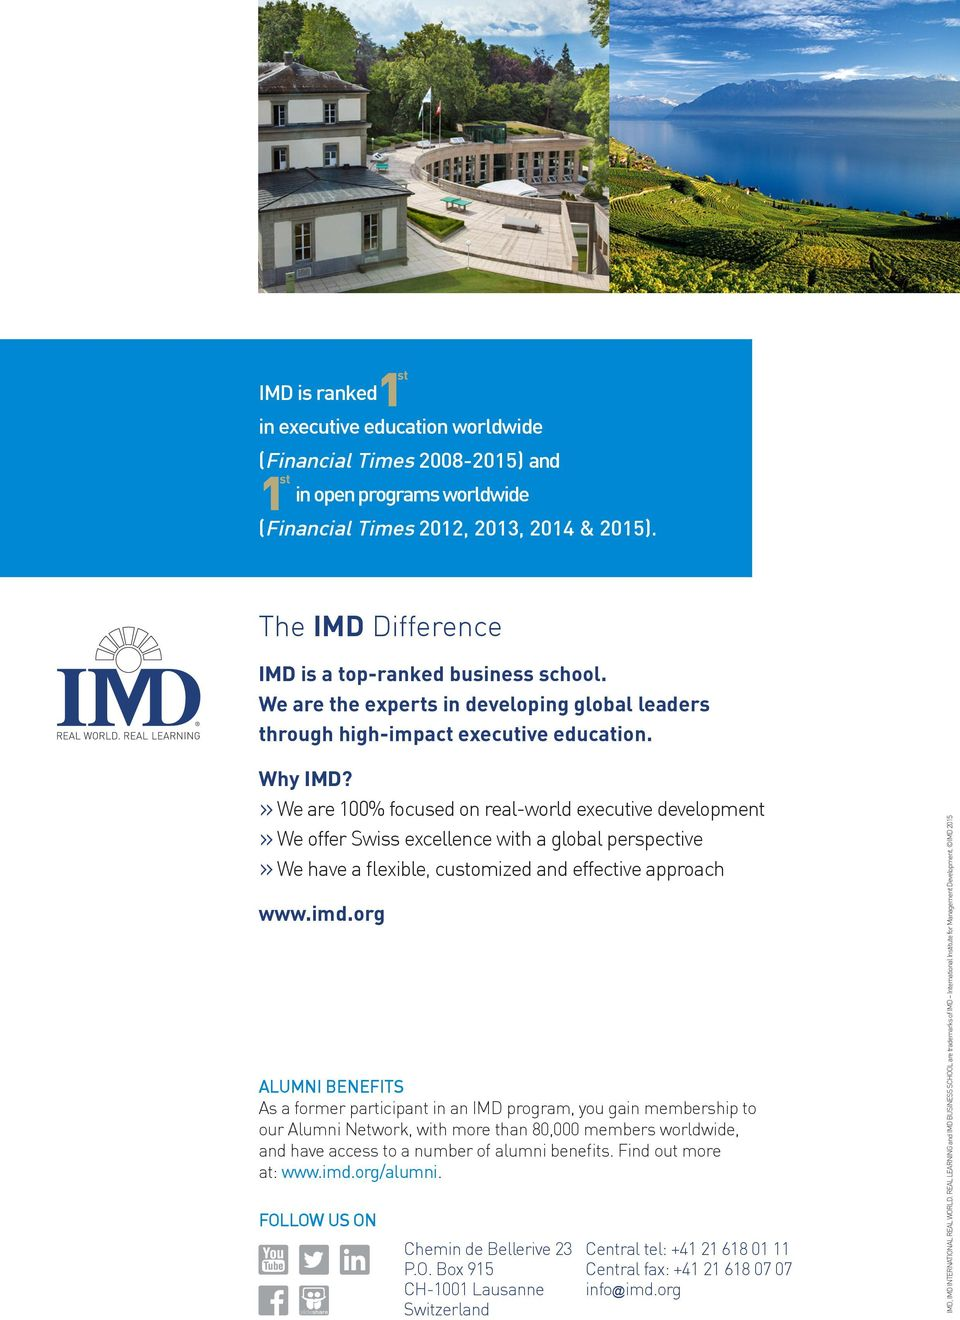 » We are 100% focused on real-world executive development» We offer Swiss excellence with a global perspective» We have a flexible, customized and effective approach www.imd.